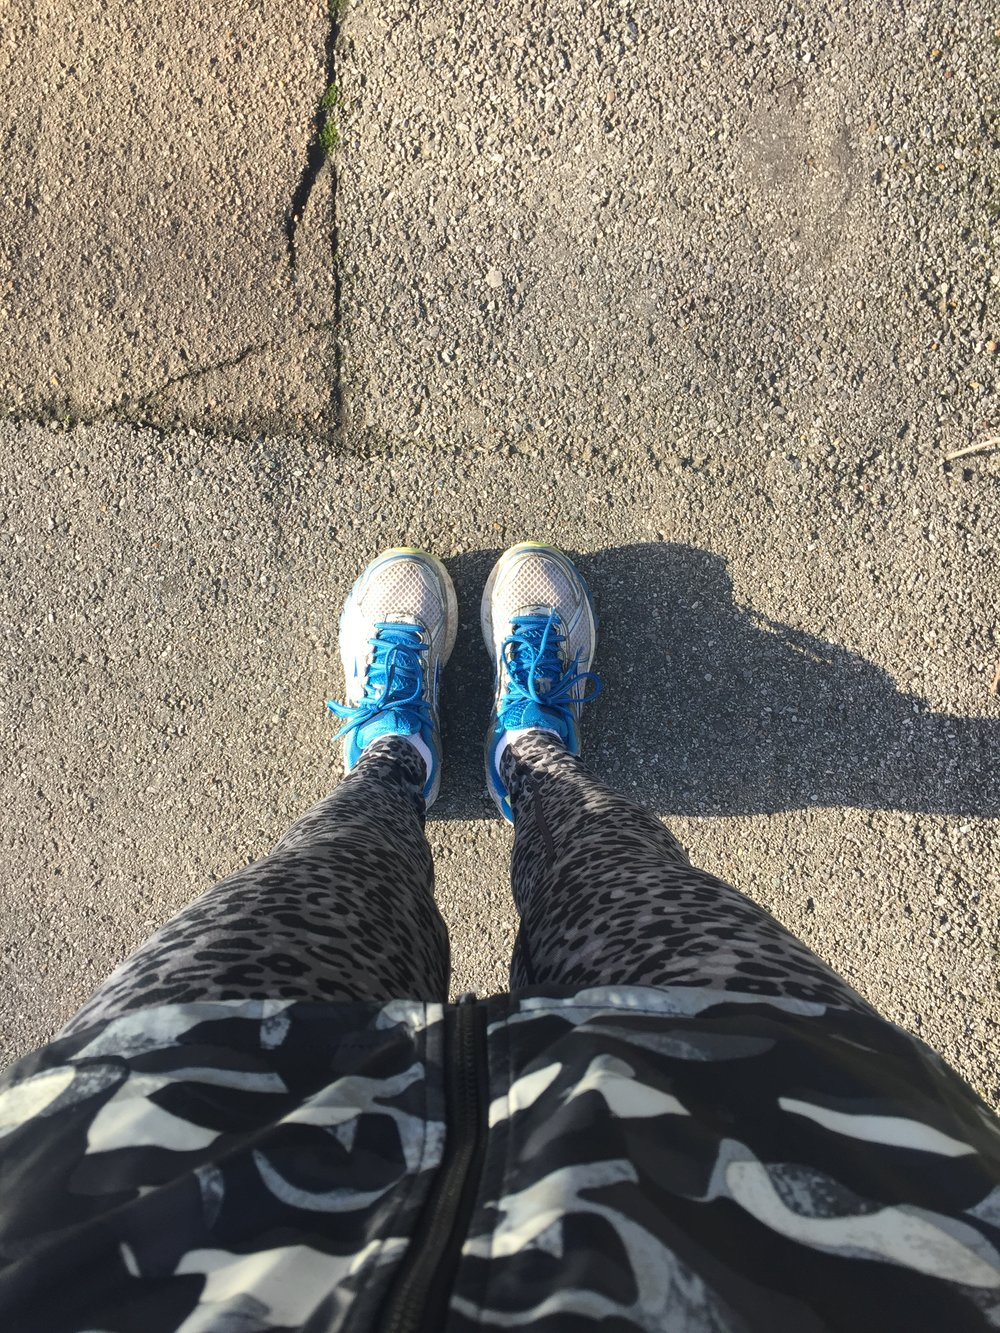 Another tip...the run doesn't count unless you have a pic of your feet.